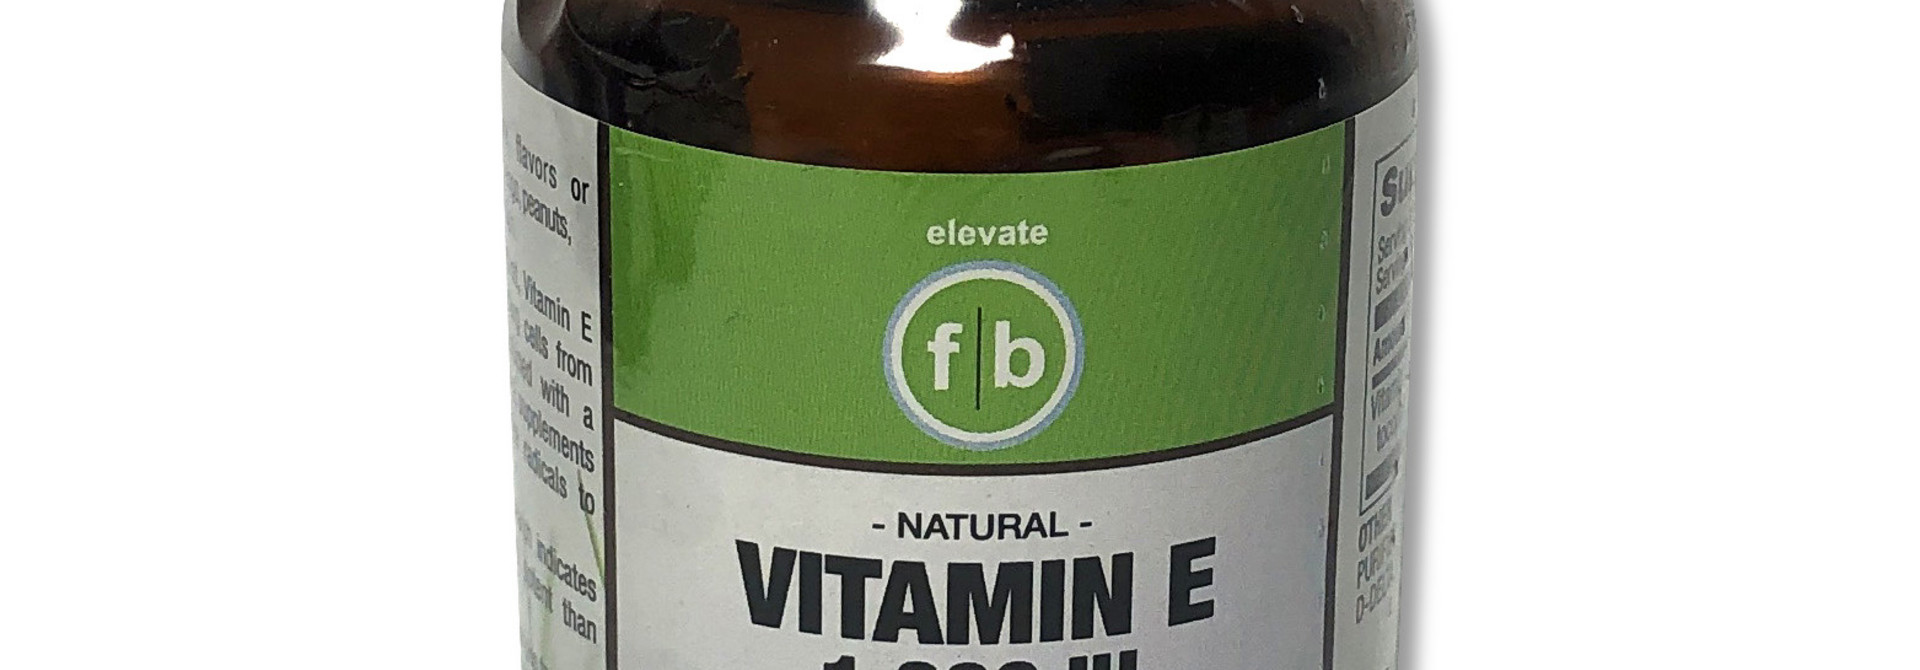 Vitamin E 1000IU 30 Softgels